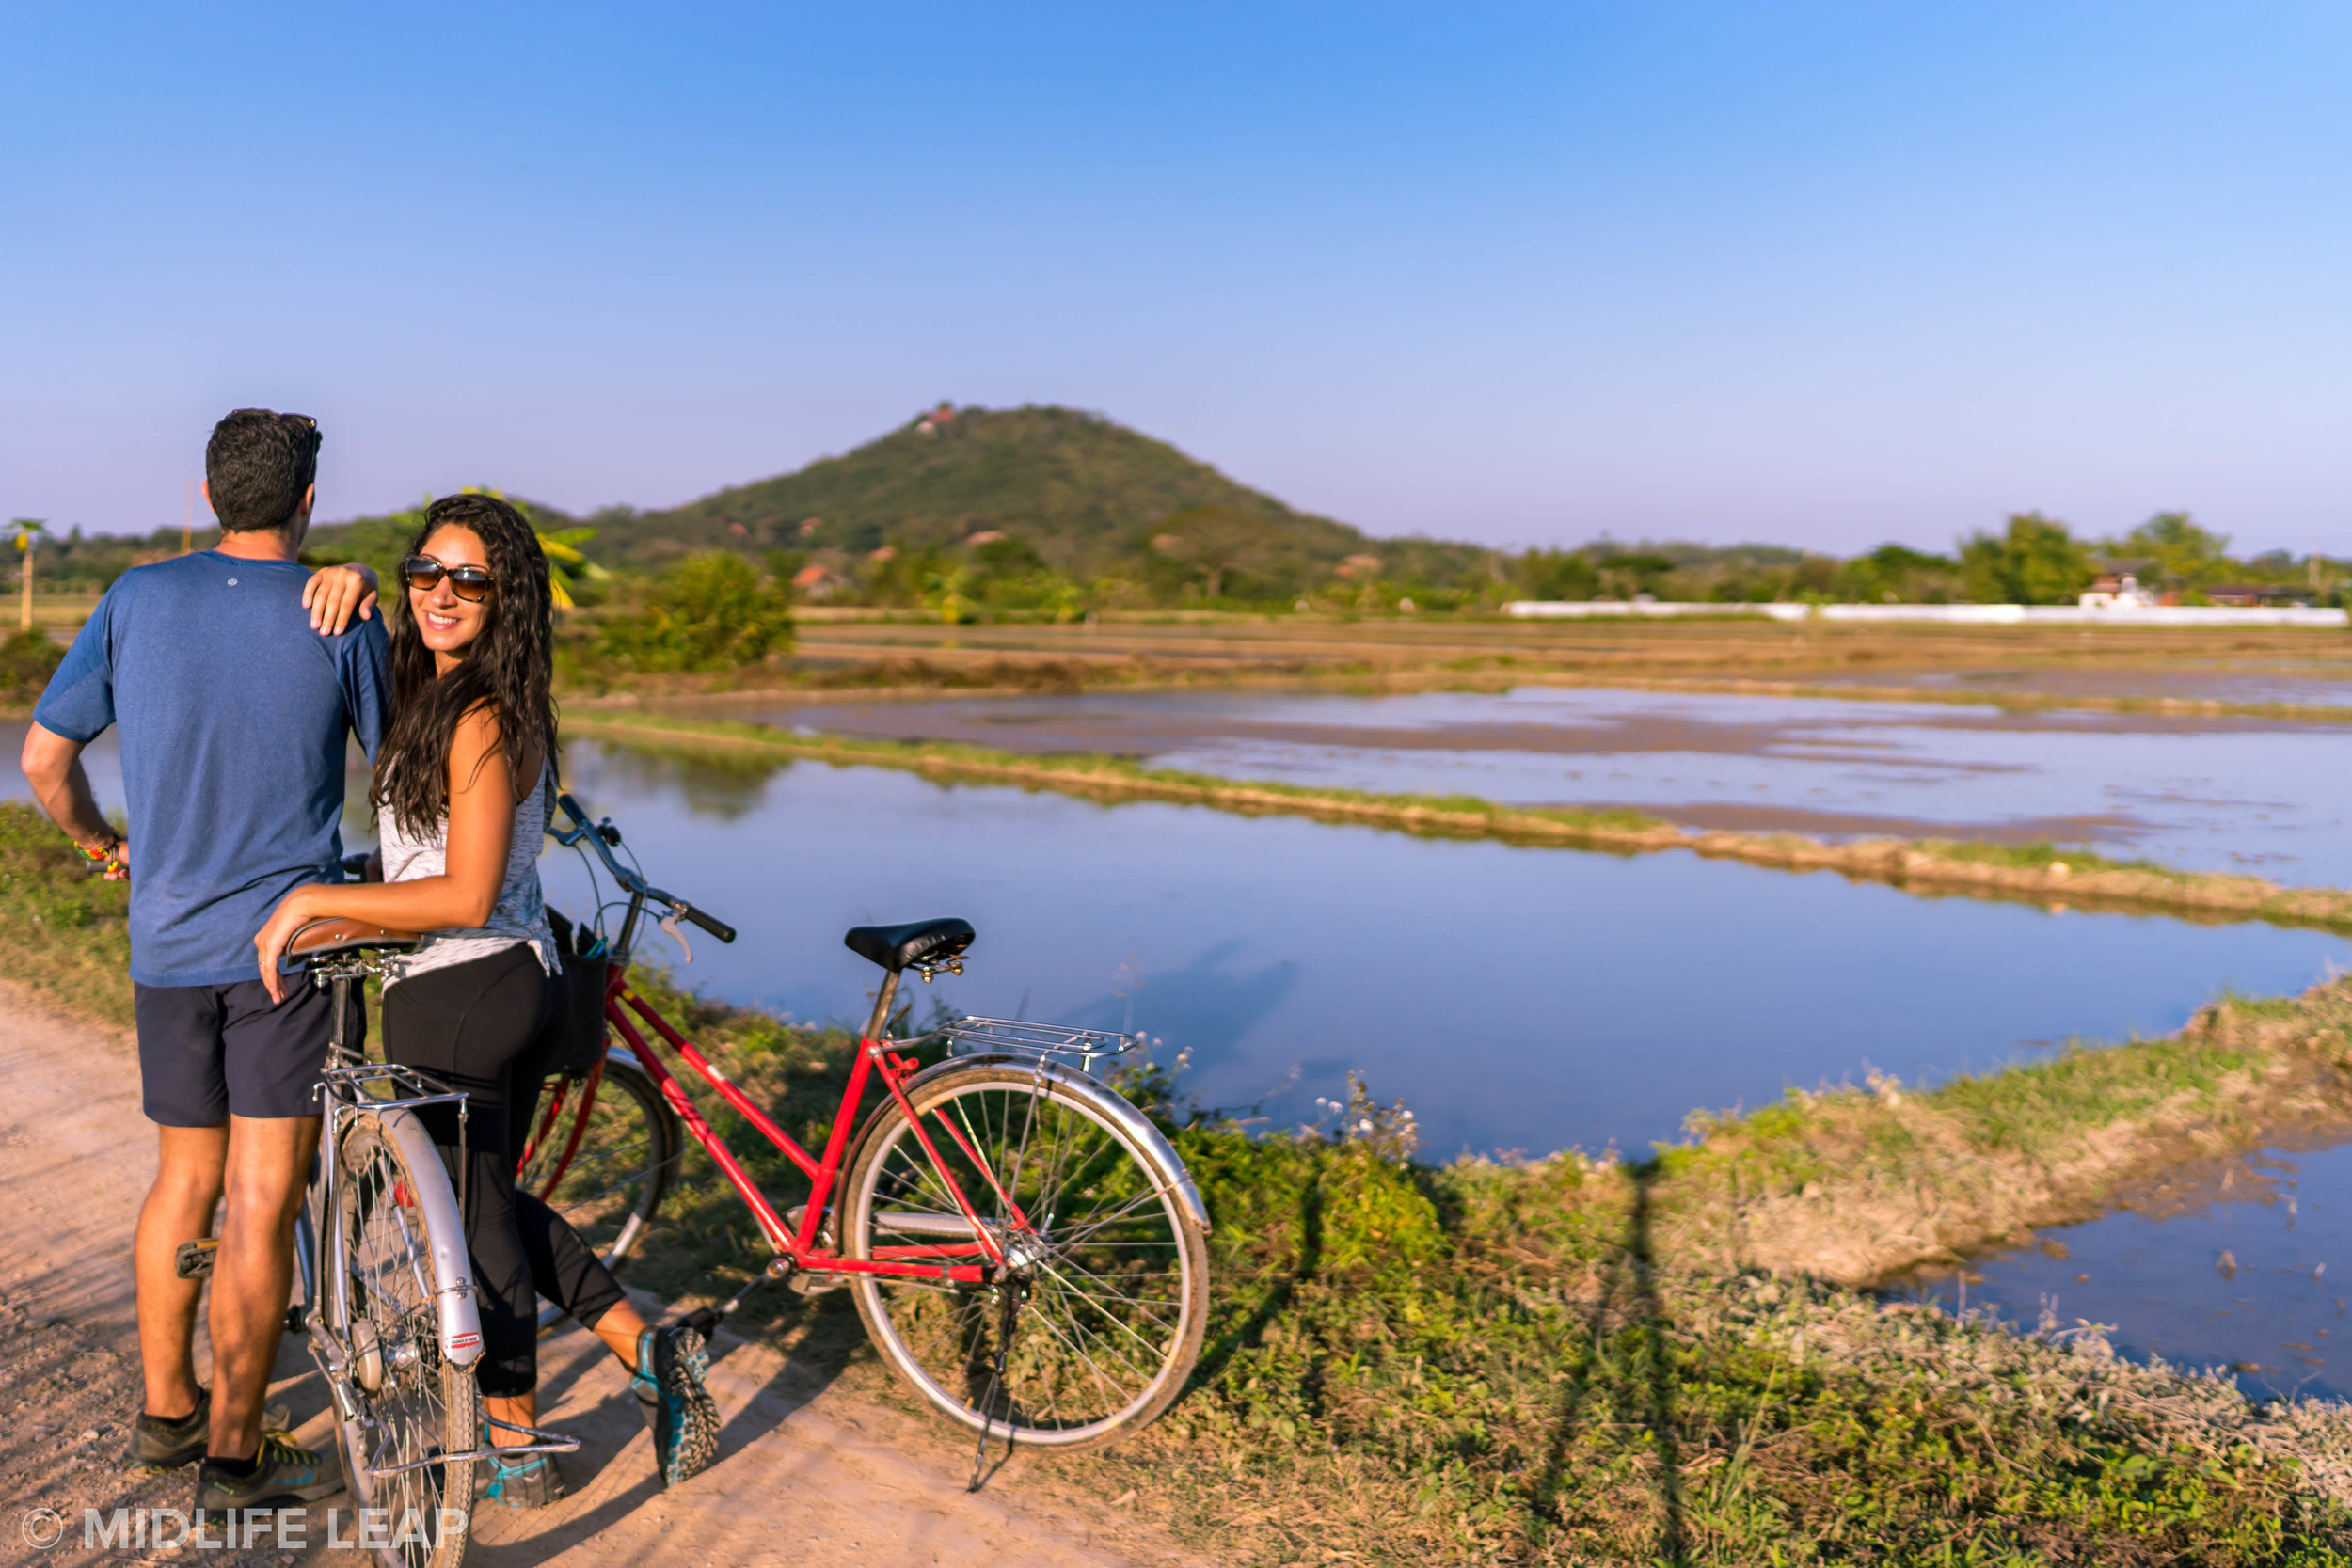 how-to-get-to-the-white-temple-chiang-rai-by-bike